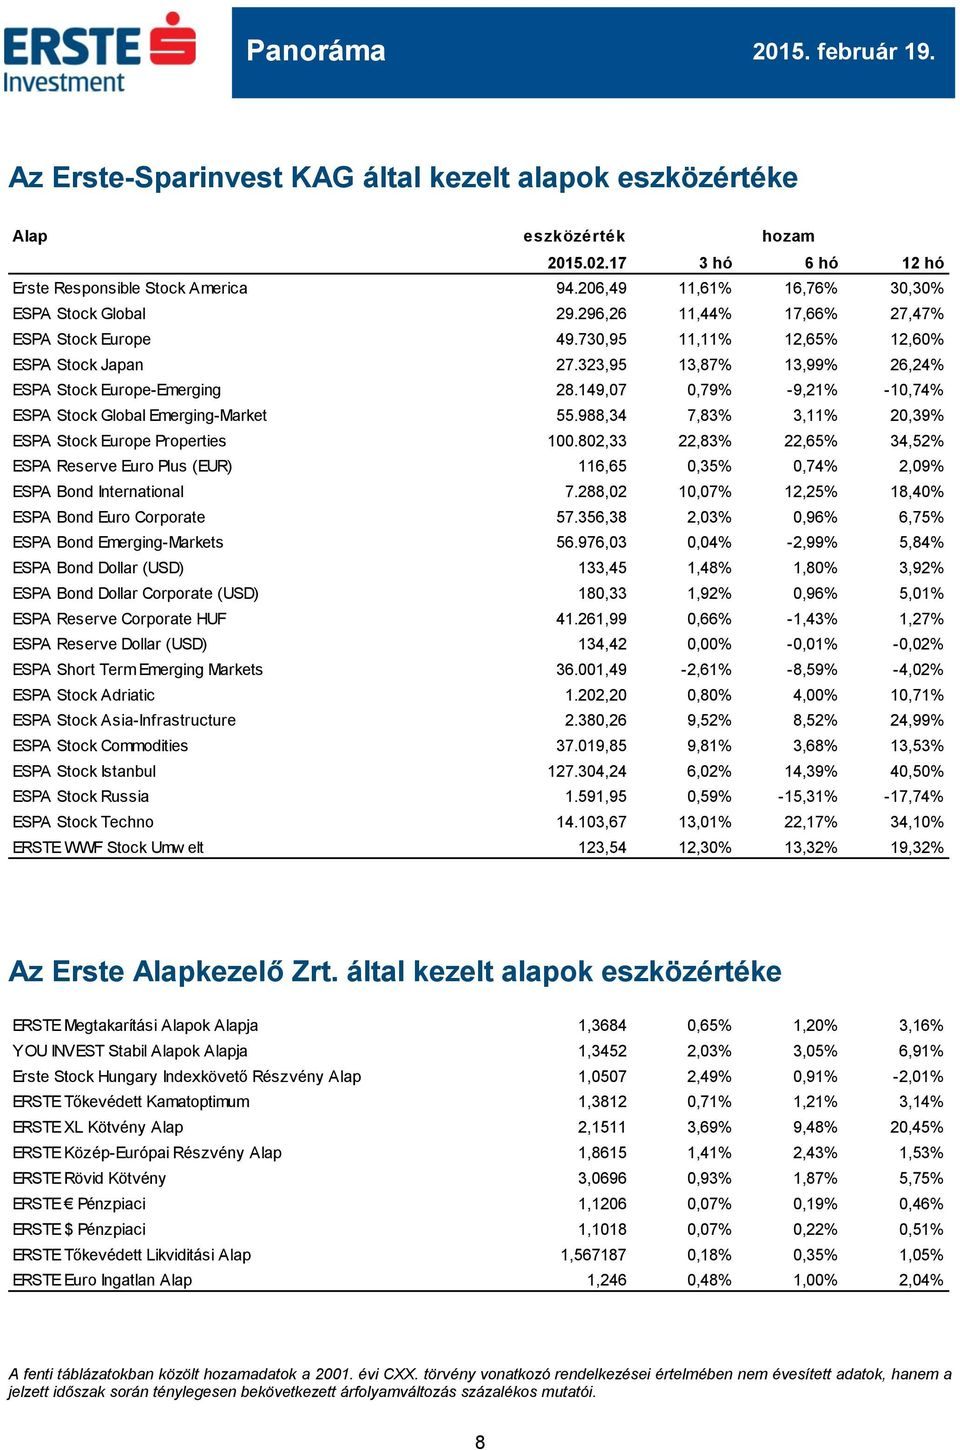 149,07 0,79% -9,21% -10,74% ESPA Stock Global Emerging-Market 55.988,34 7,83% 3,11% 20,39% ESPA Stock Europe Properties 100.